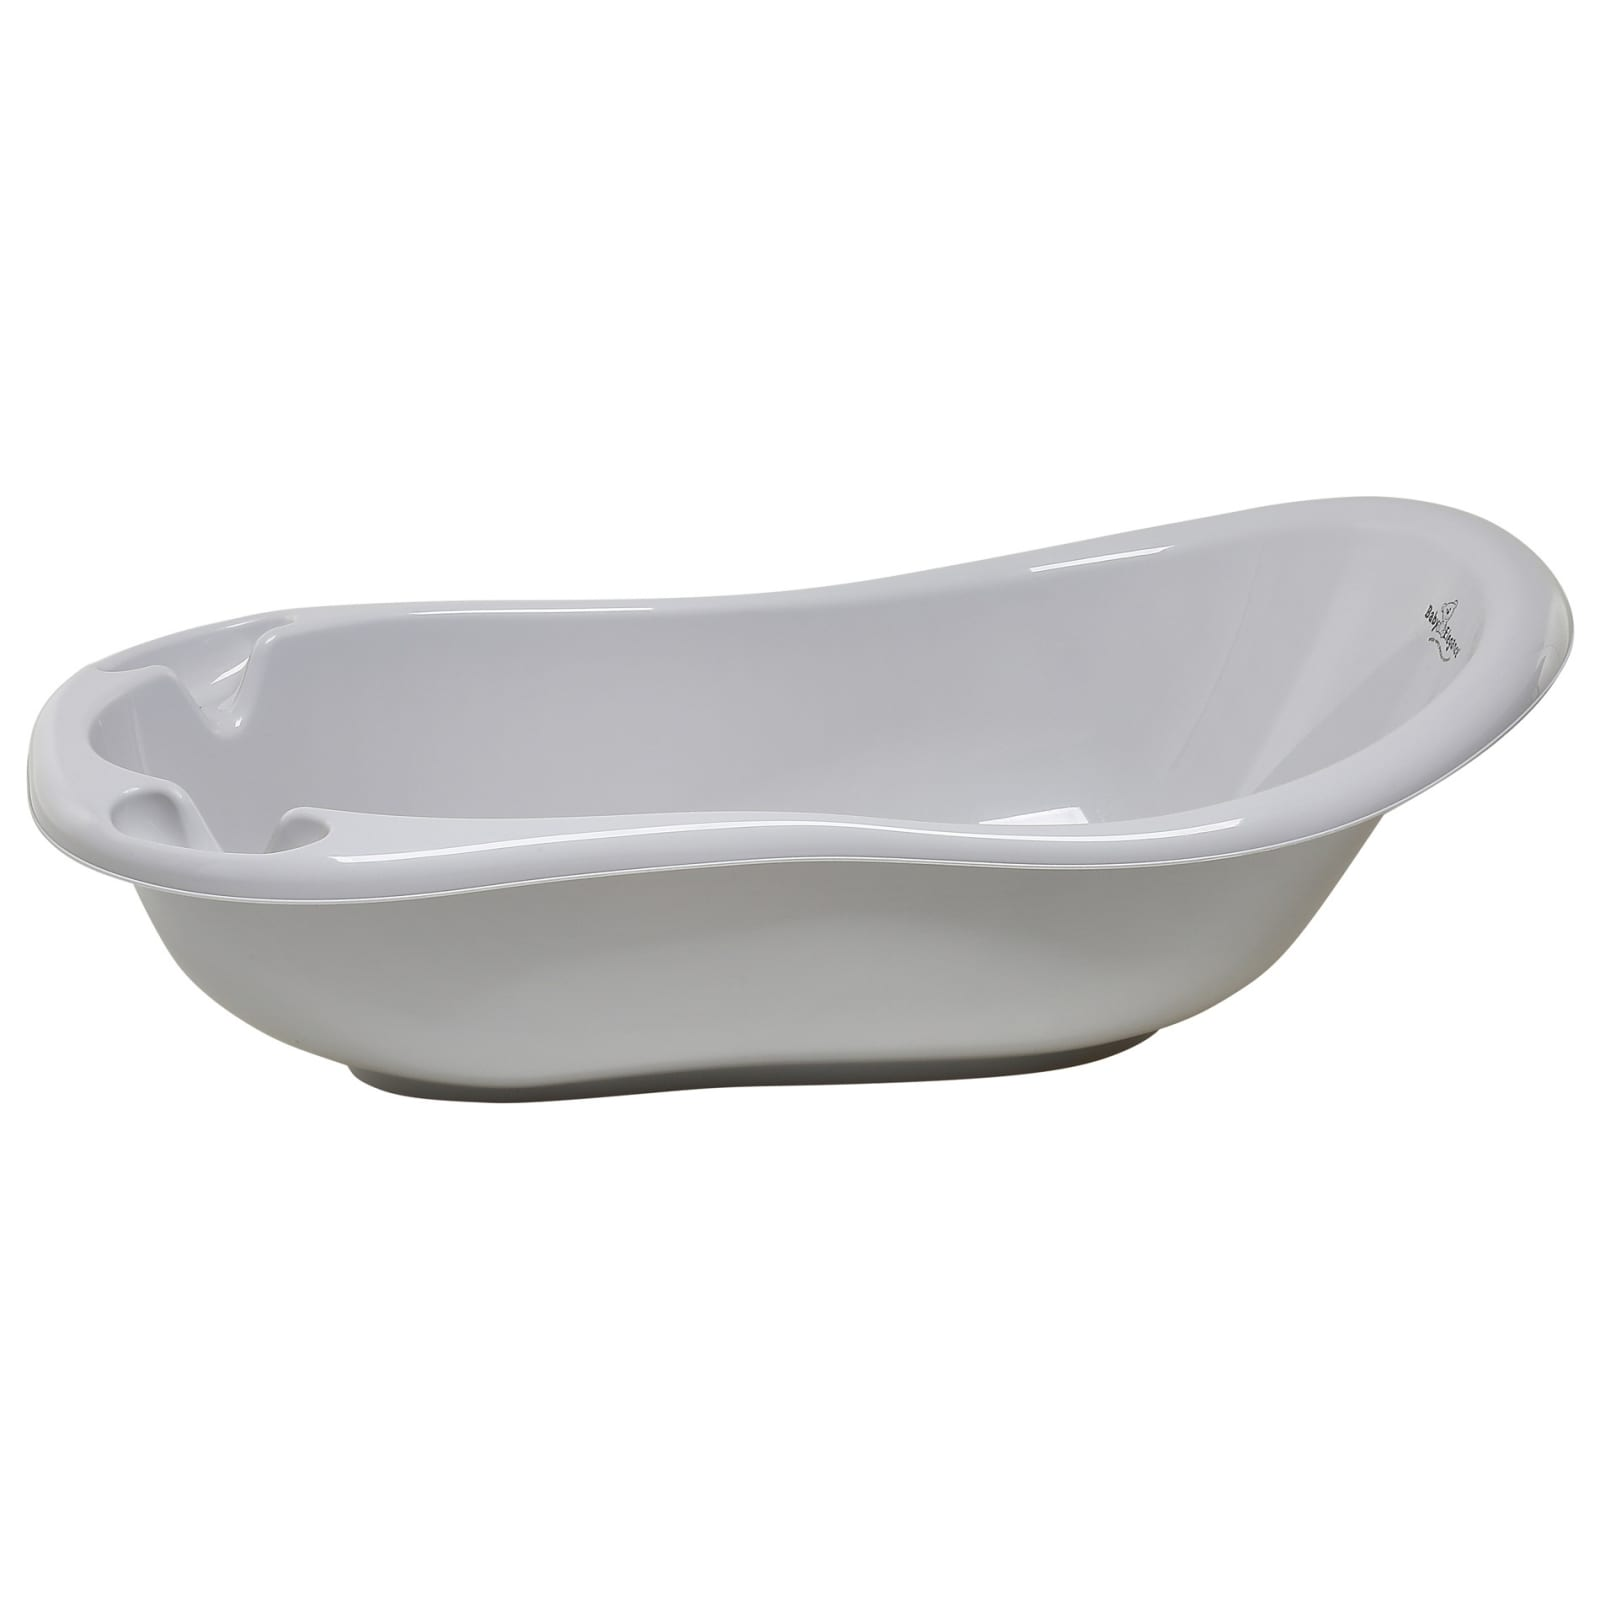 100cm Bath with stopper – Grey product image